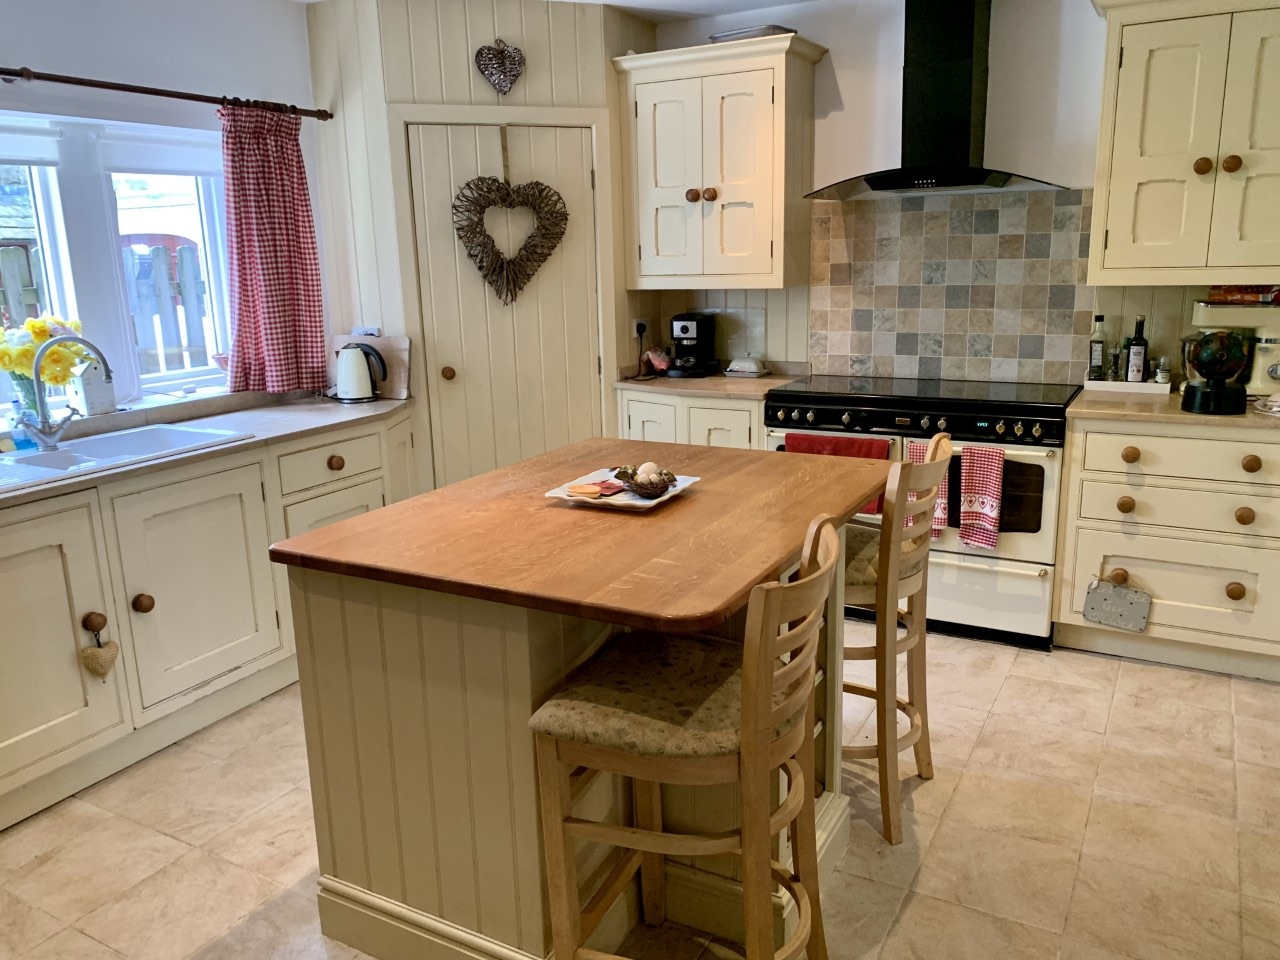 3 bedroom detached house For Sale in Calderdale - Photograph 5.